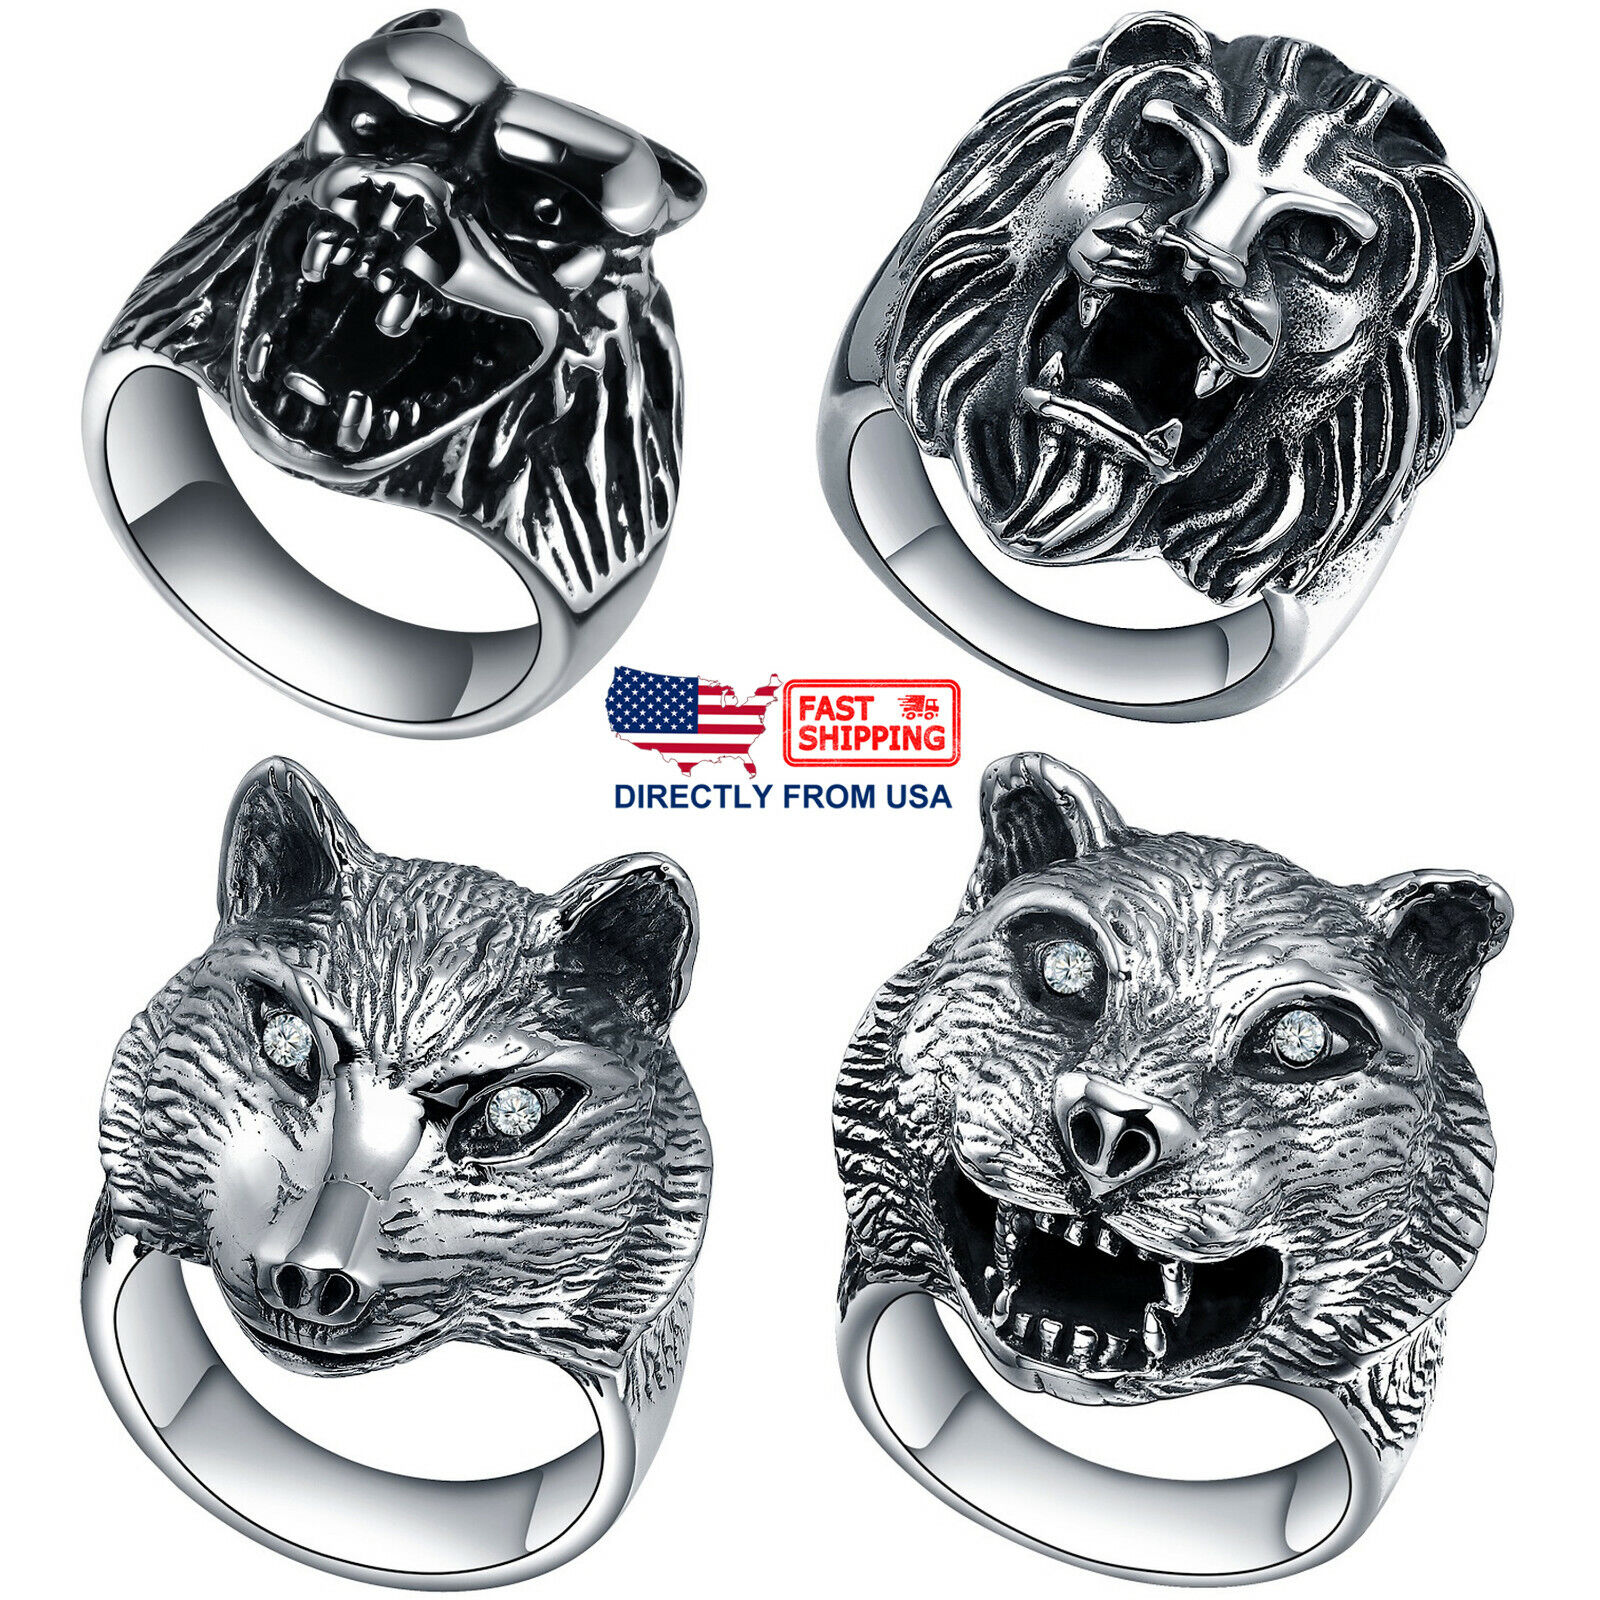 Men's Stainless Steel Gothic Biker Wolf and Lion Ring (Size 7 to 15, US Seller) Jewelry & Watches